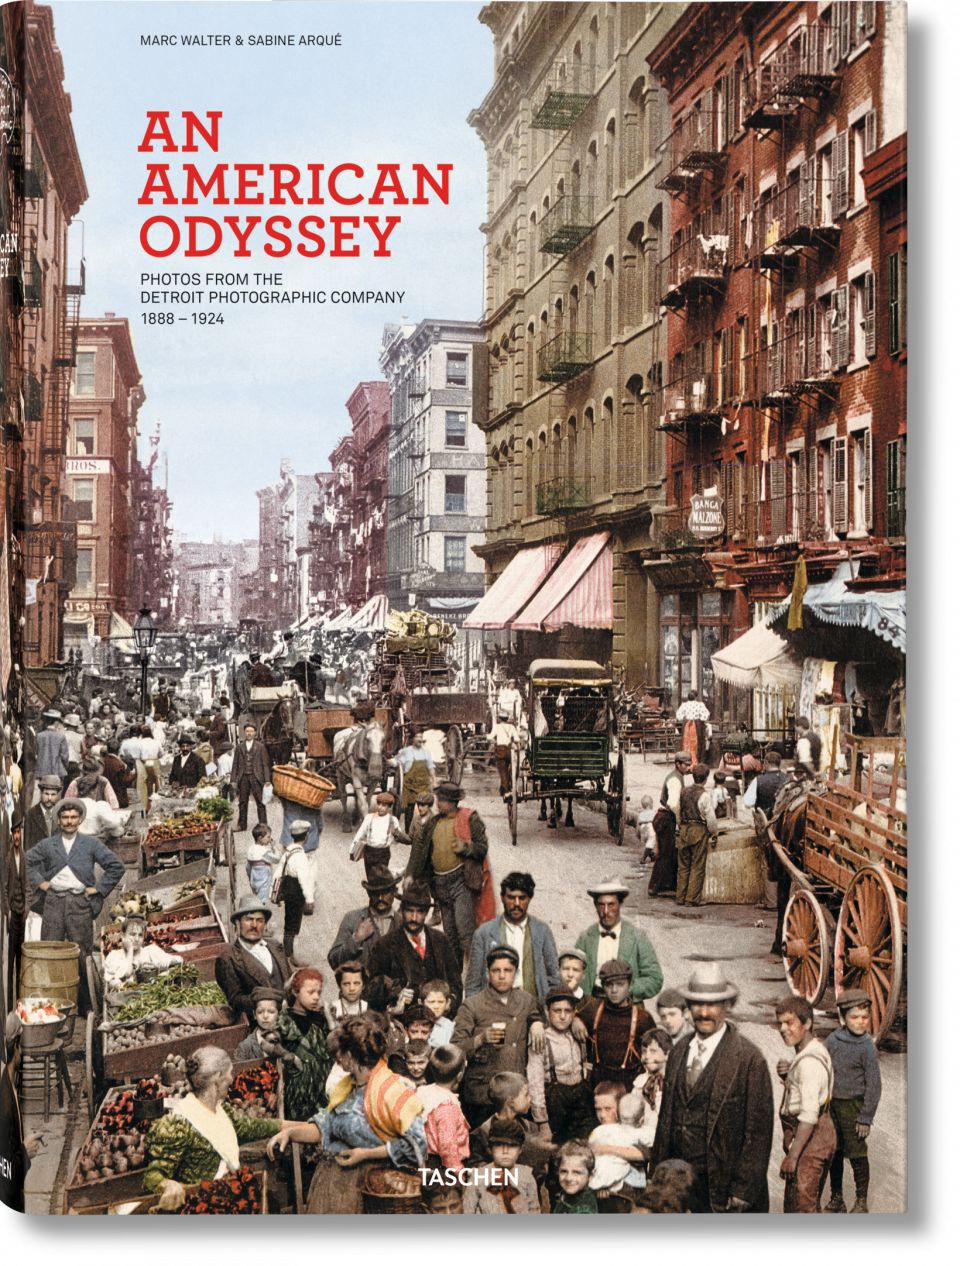 An American Odyssey: Photos From the Detroit Photographic Company 1888-1924